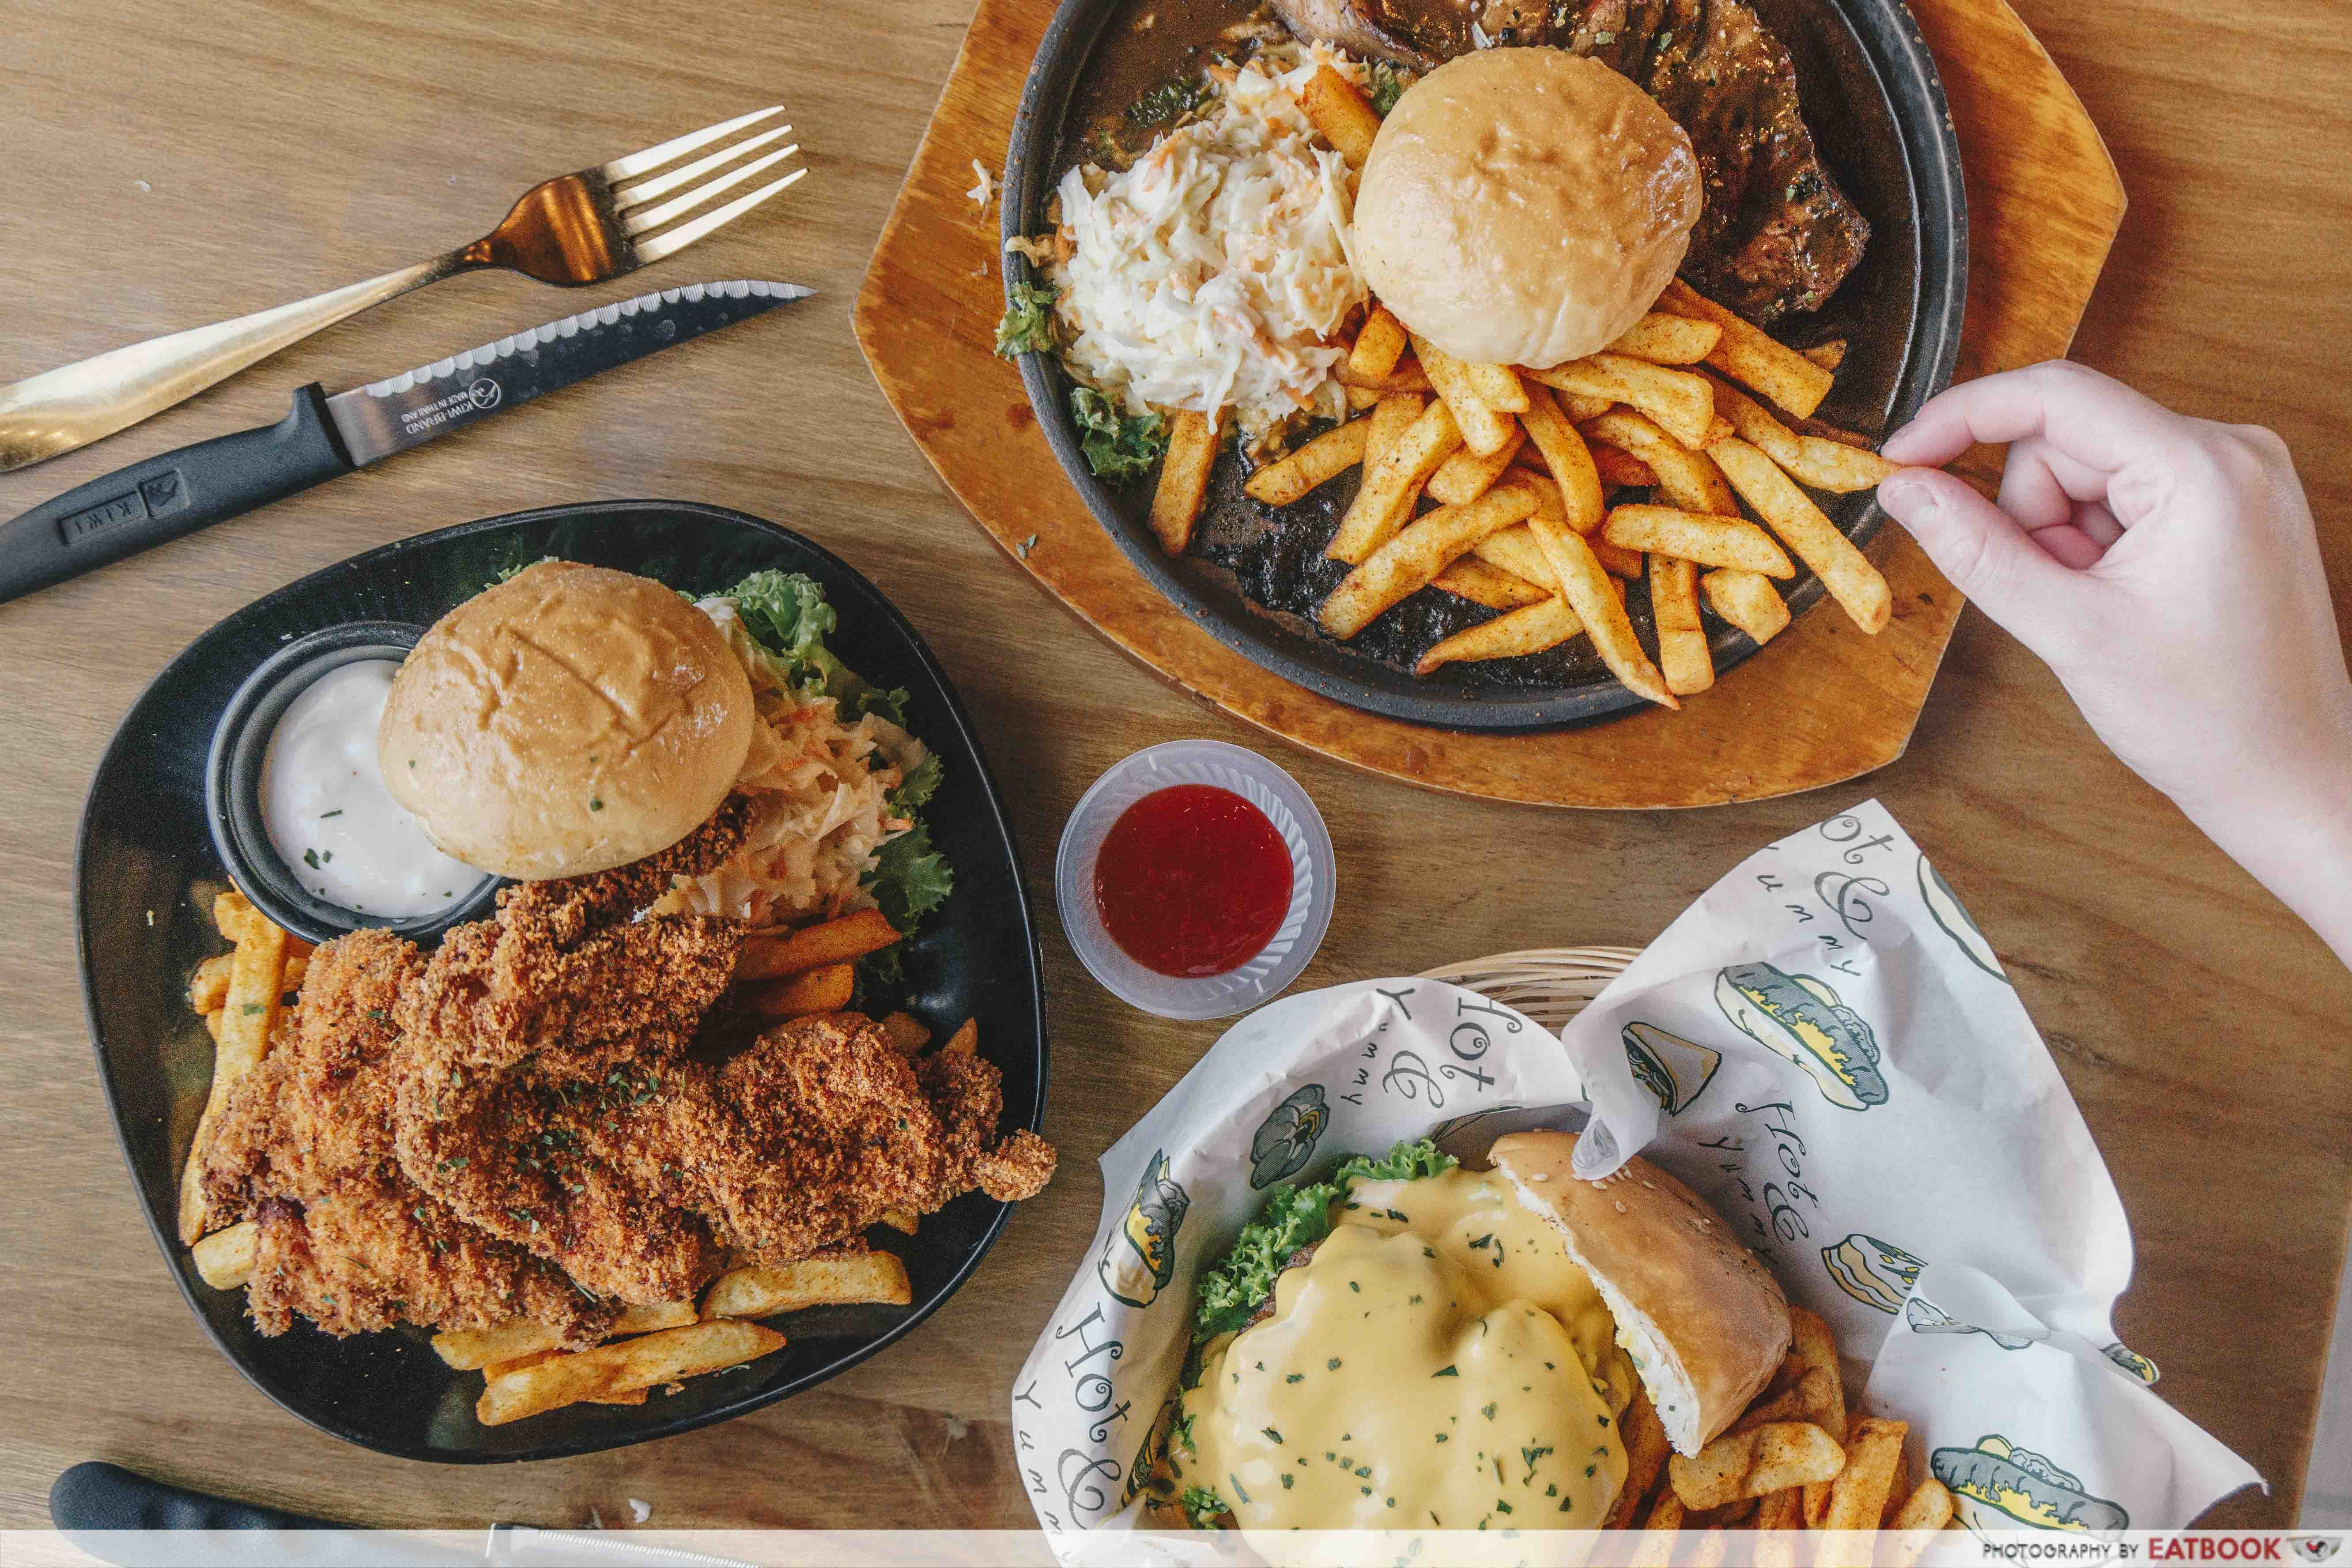 Fatty Bom Bom Review: Halal-Certified Western Food With Big Portions